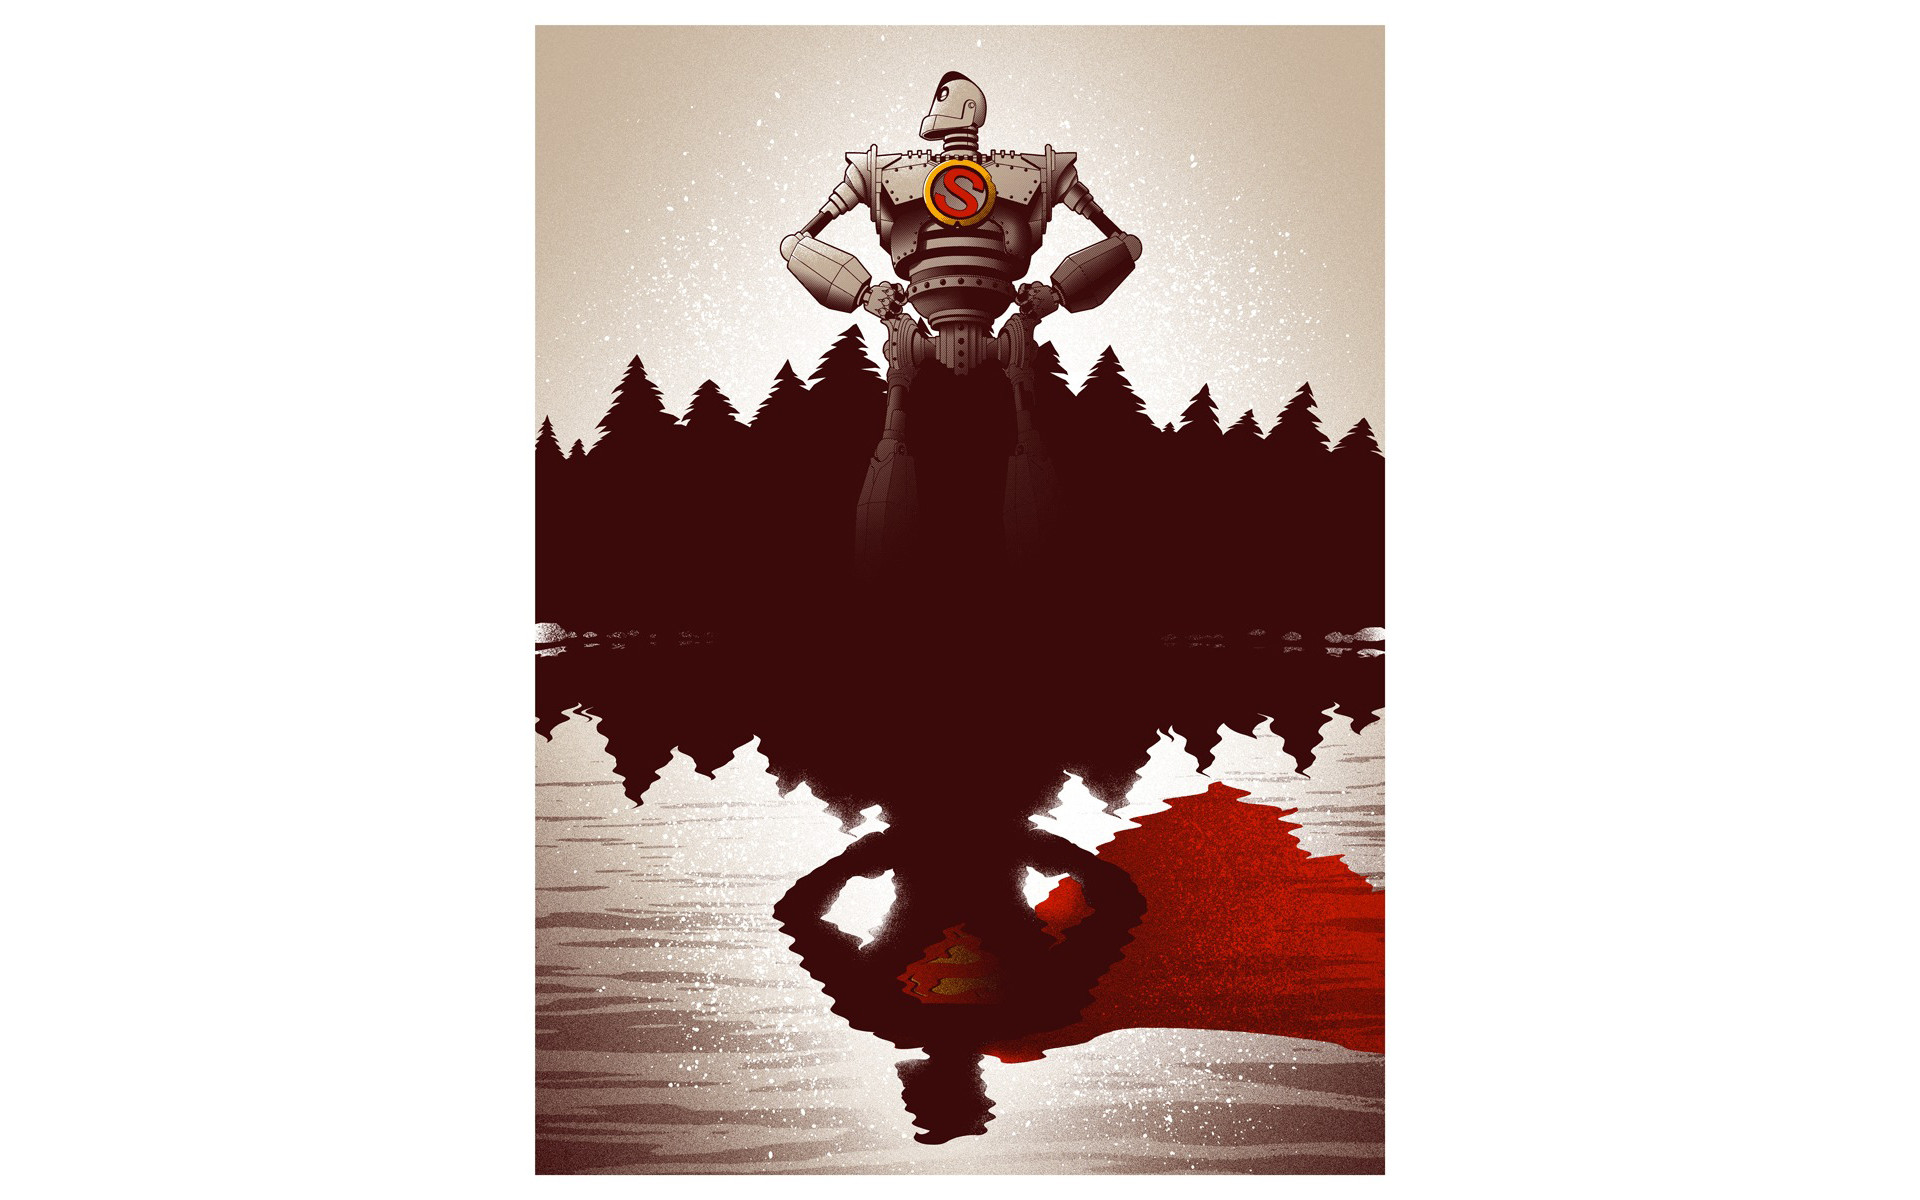 The Iron Giant Robot Reflection White Superman superhero wallpaper |  | 133007 | WallpaperUP